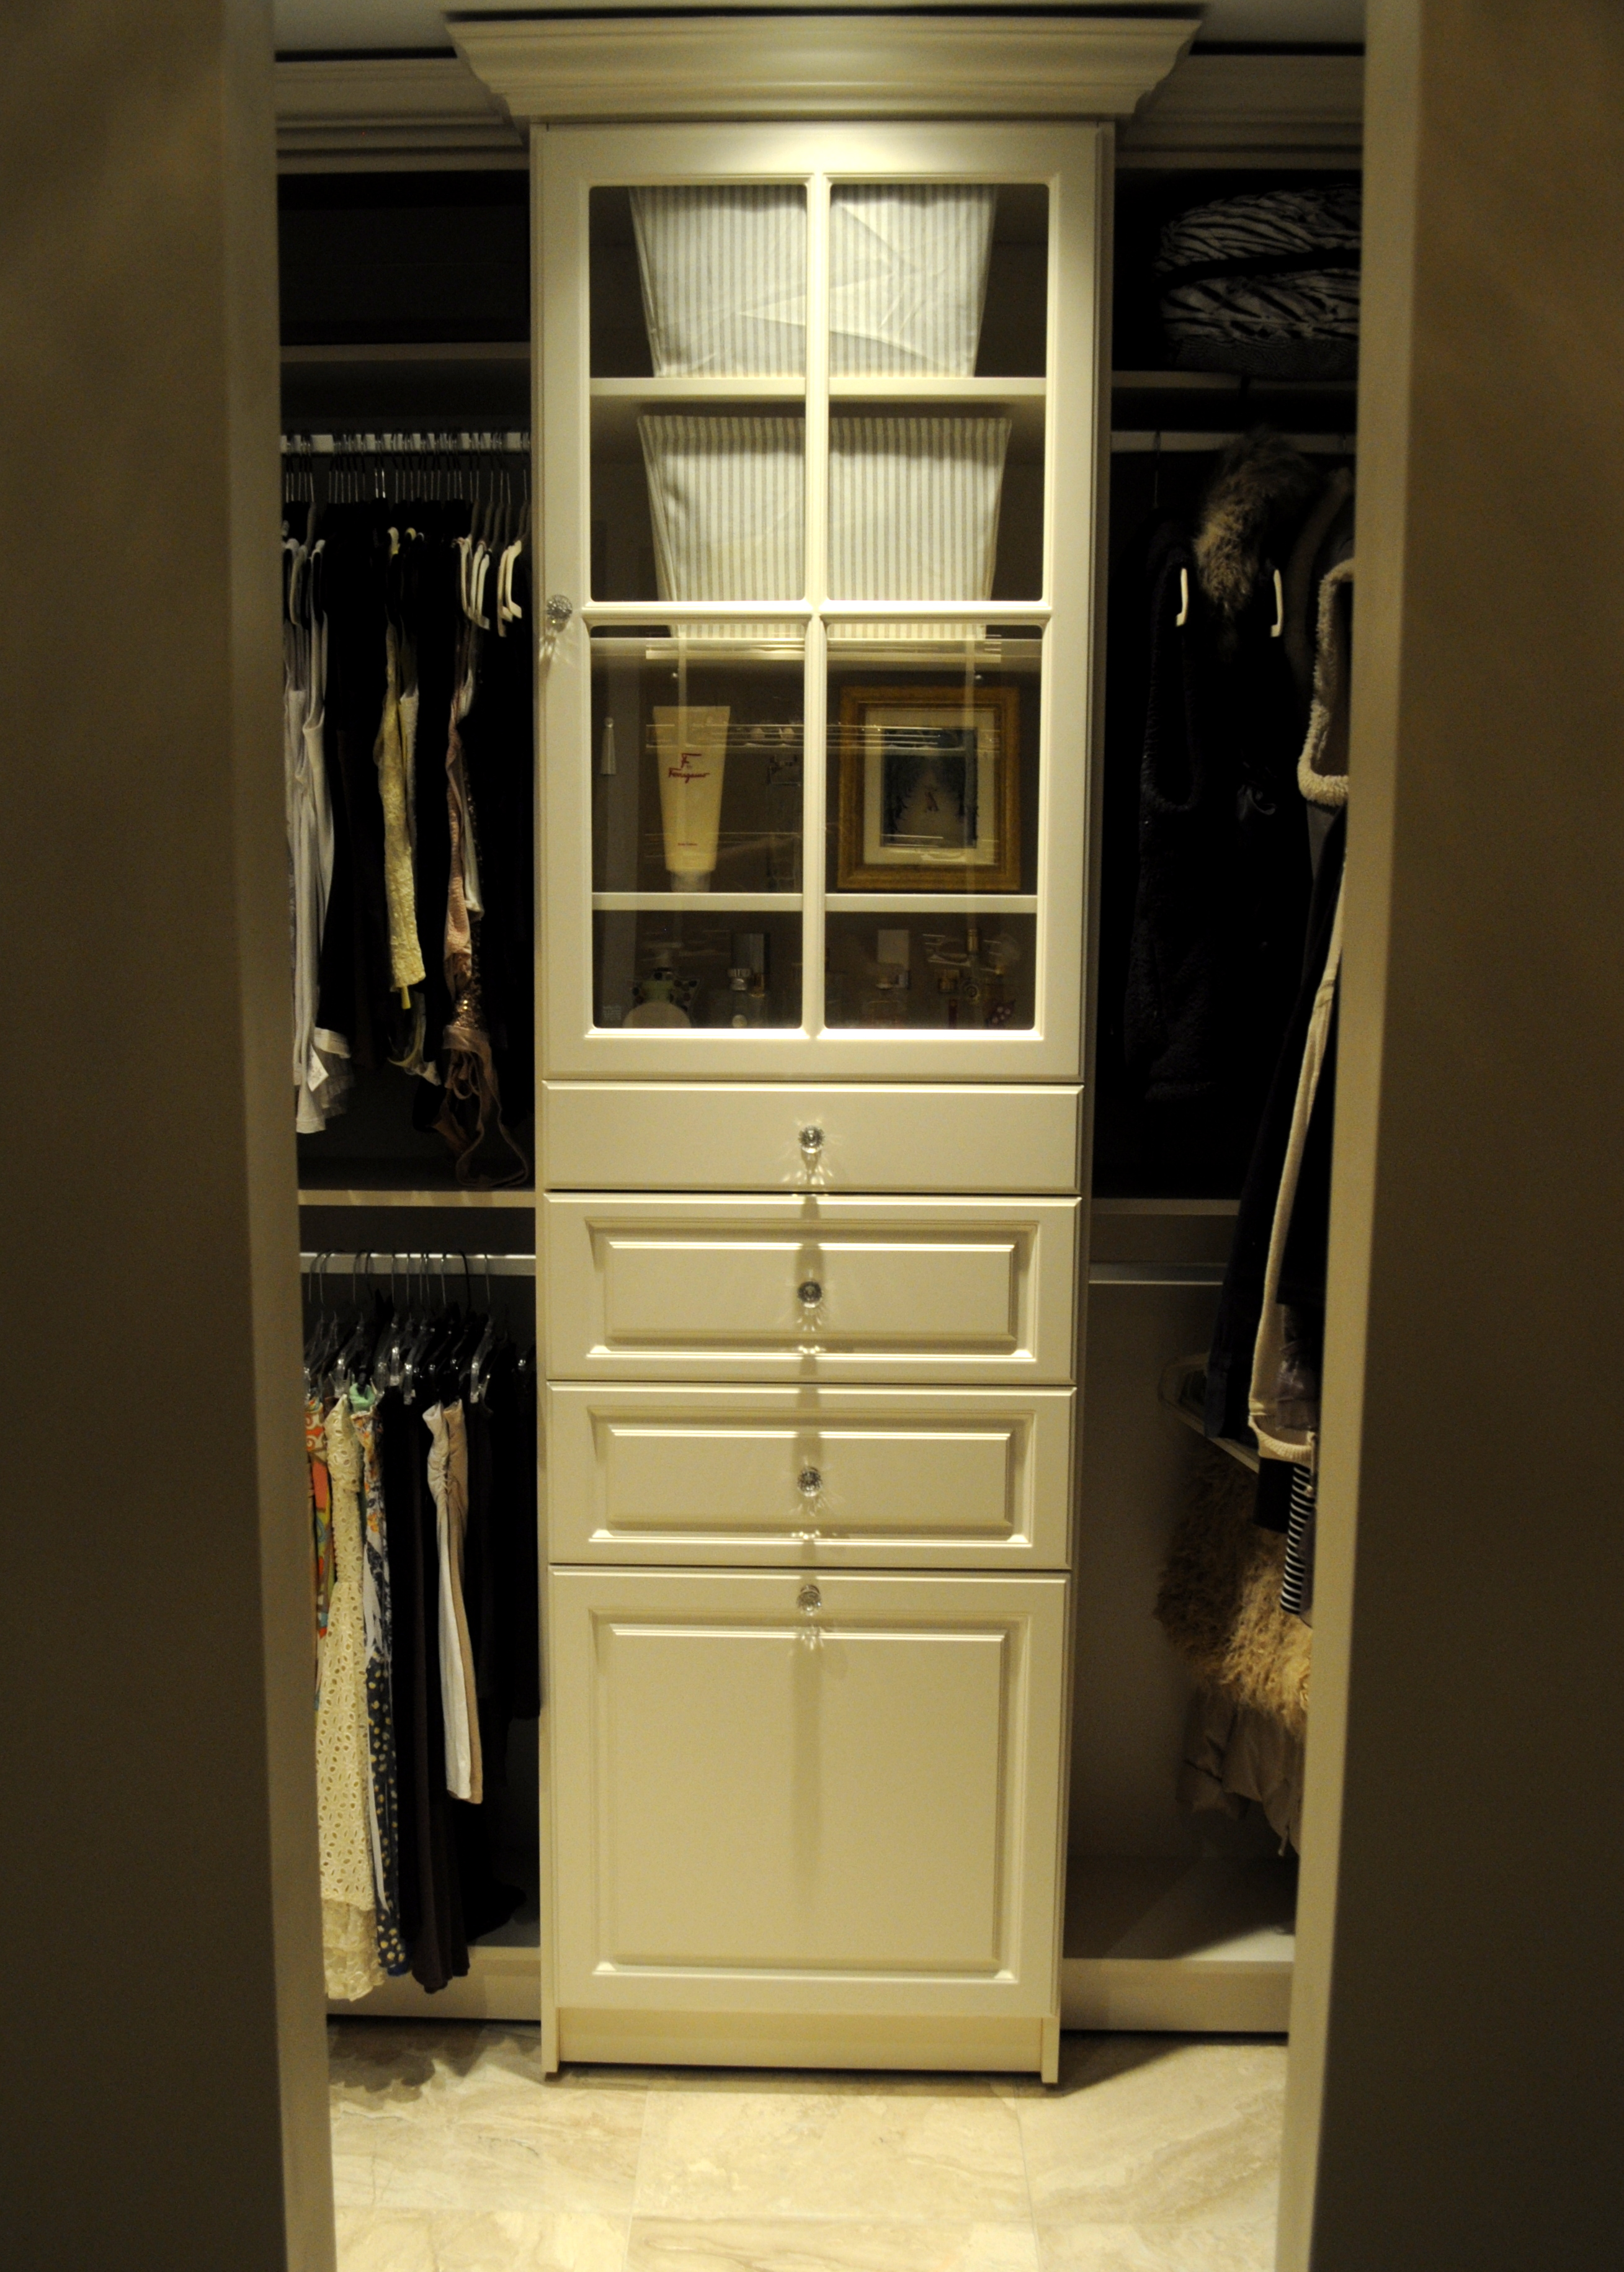 Custom Closet Company Bella Systems Philly of Medford New Jersey Receives Houzzs 2013 Best